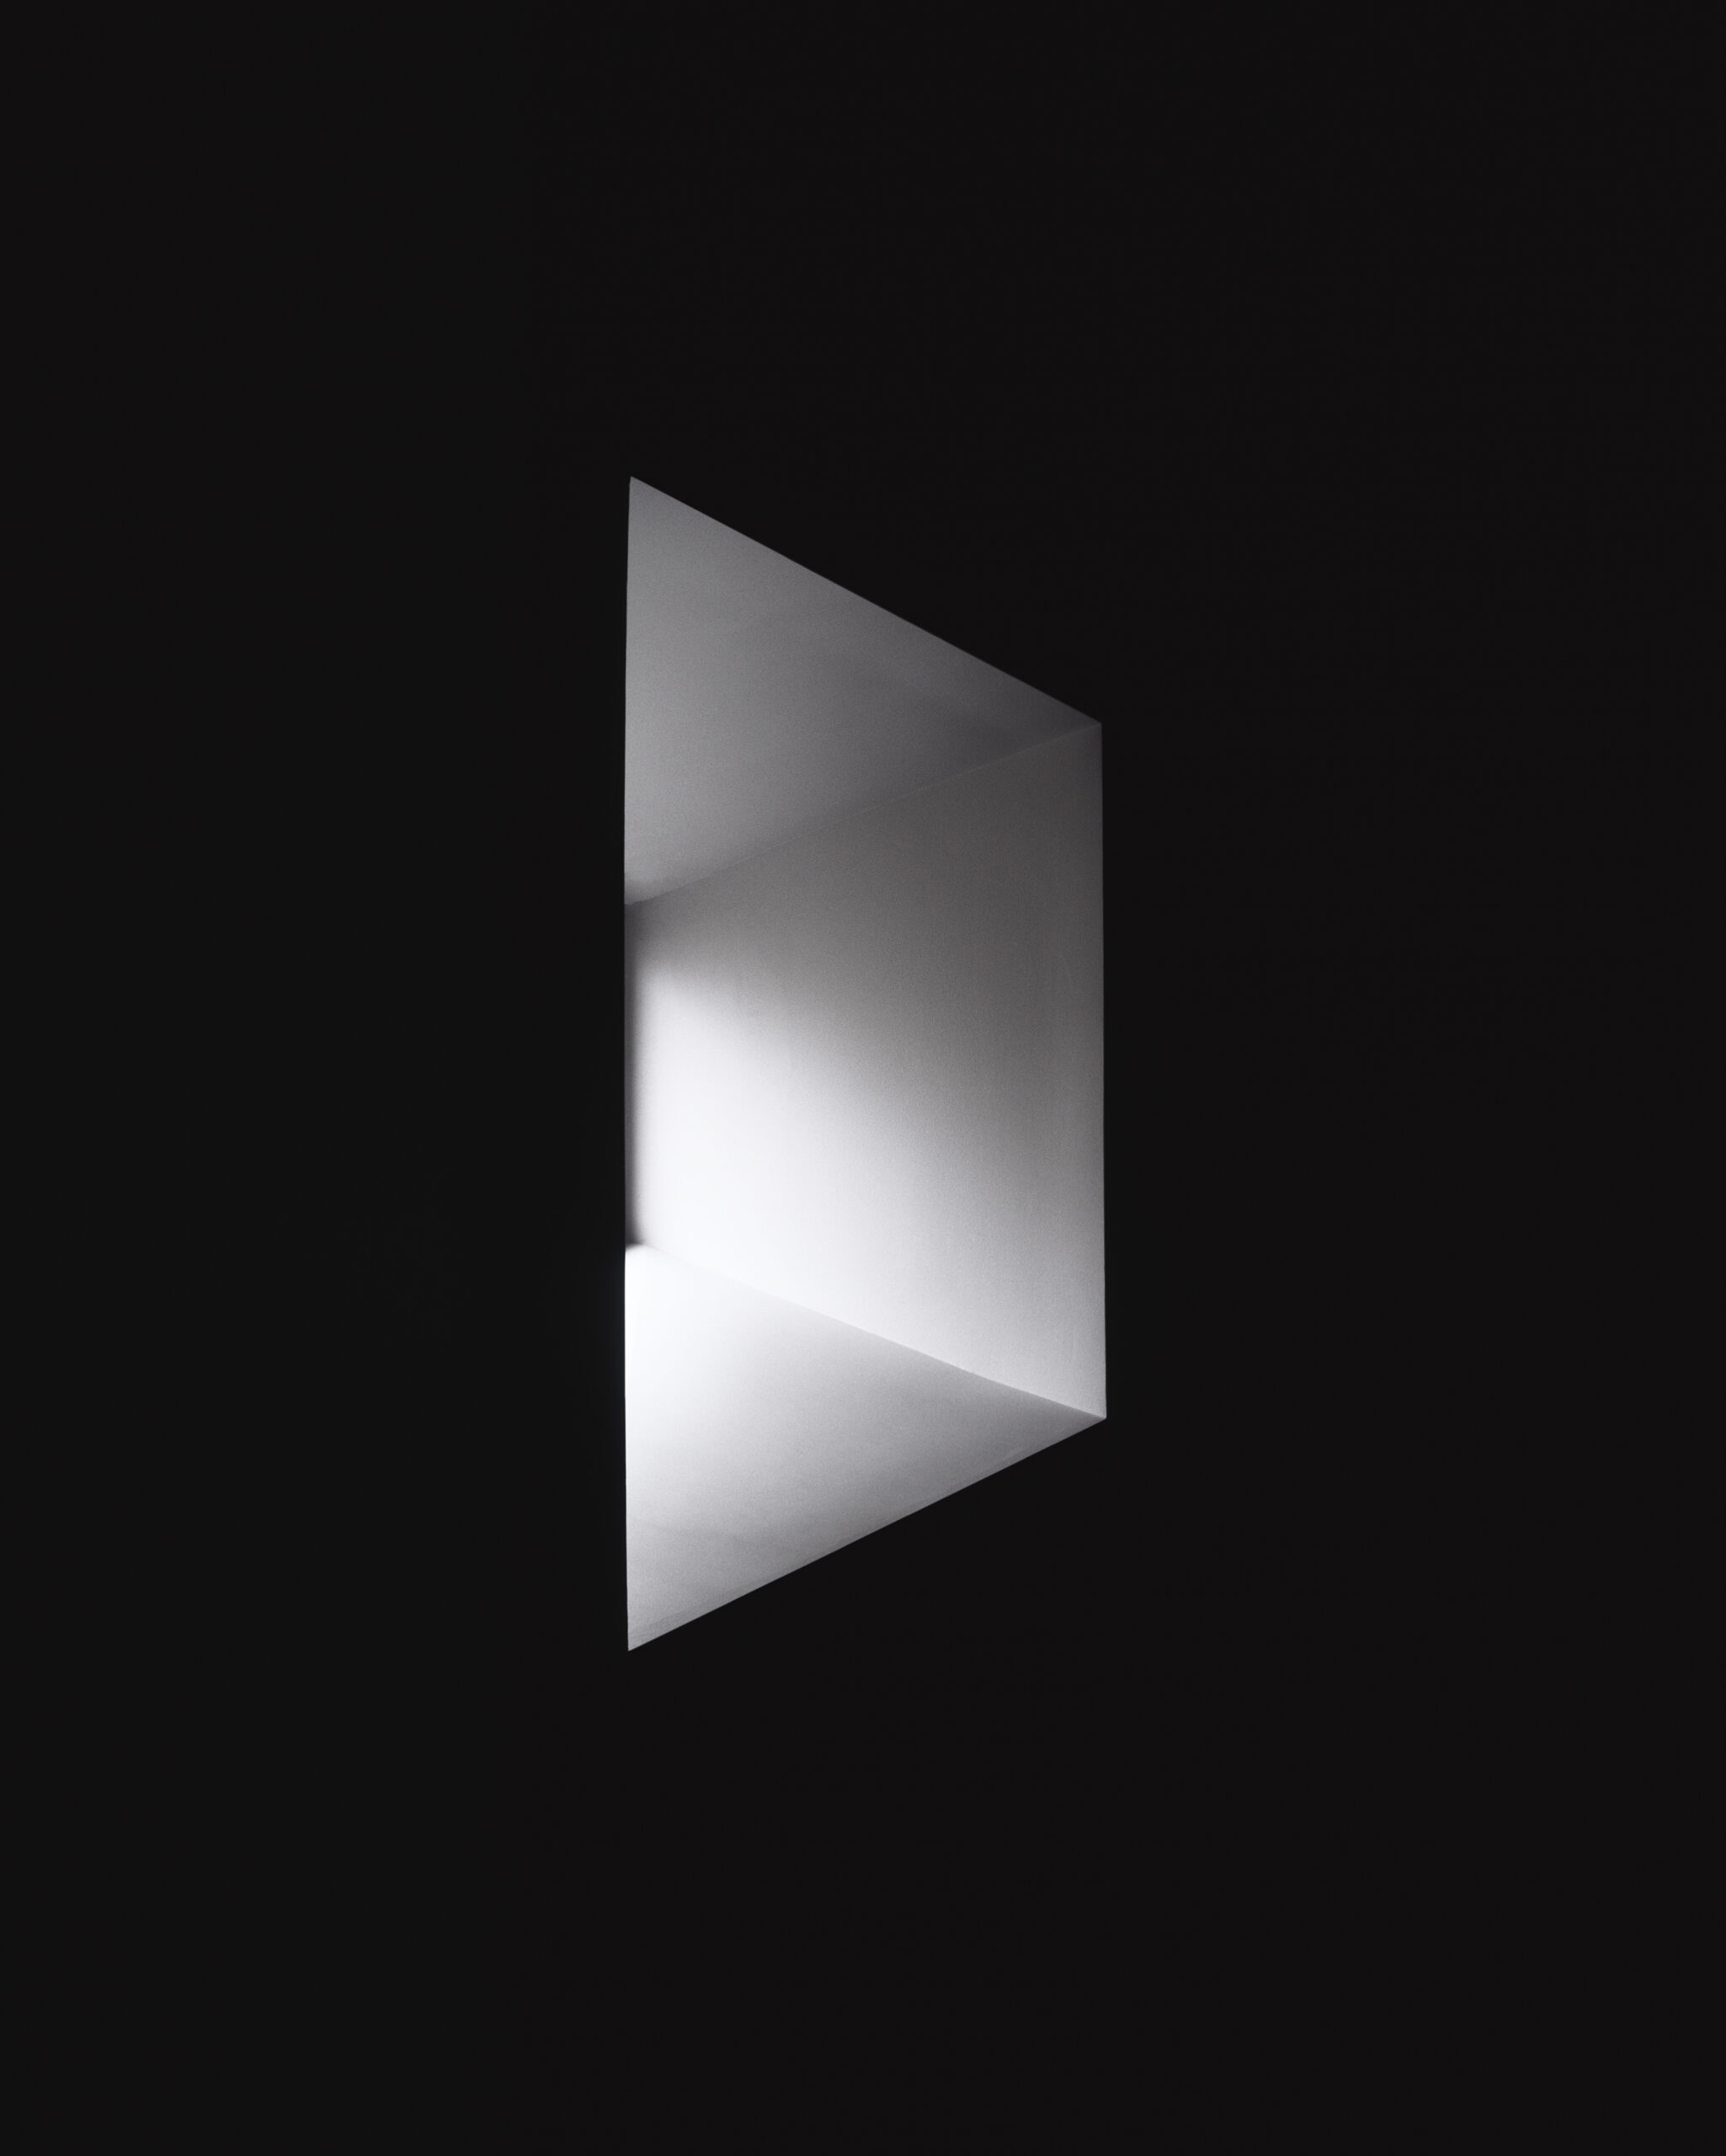 As part of the Autoritratto exhibition by Luisa Lambri, a contrete deep-set window is half a black room and light is coming through the window